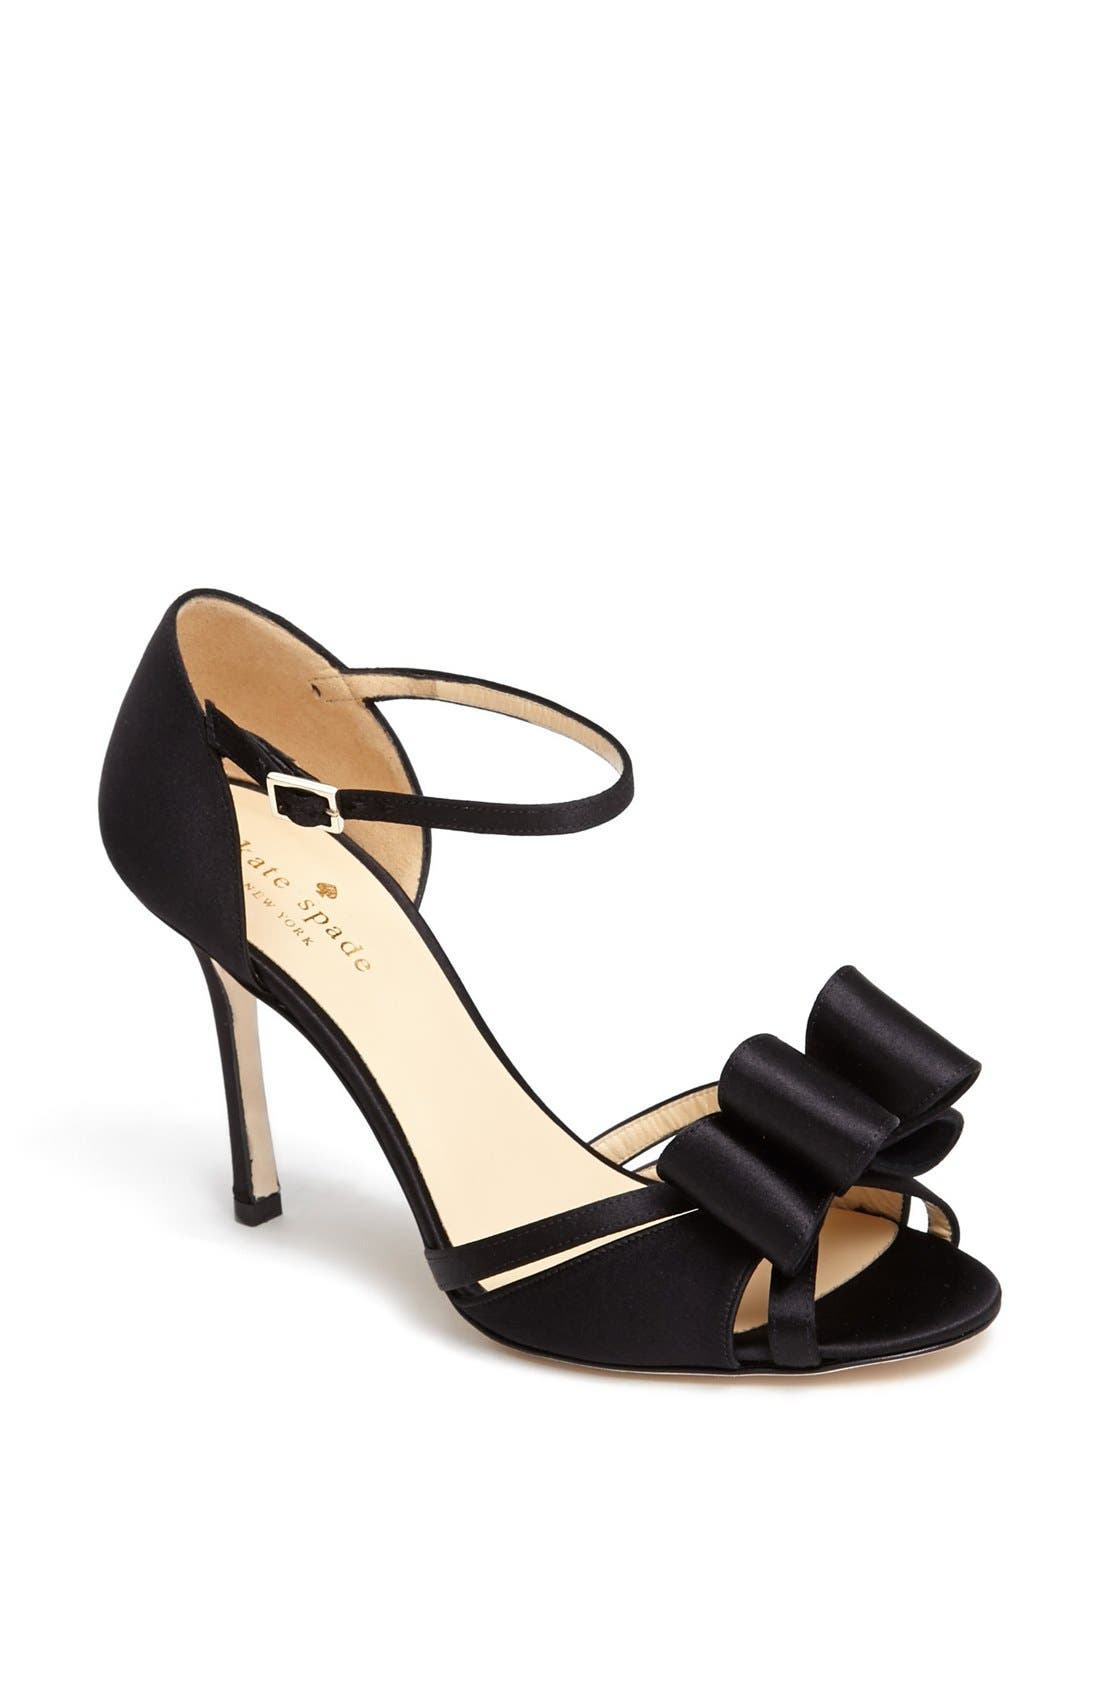 Main Image - kate spade new york 'ivela' ankle strap sandal